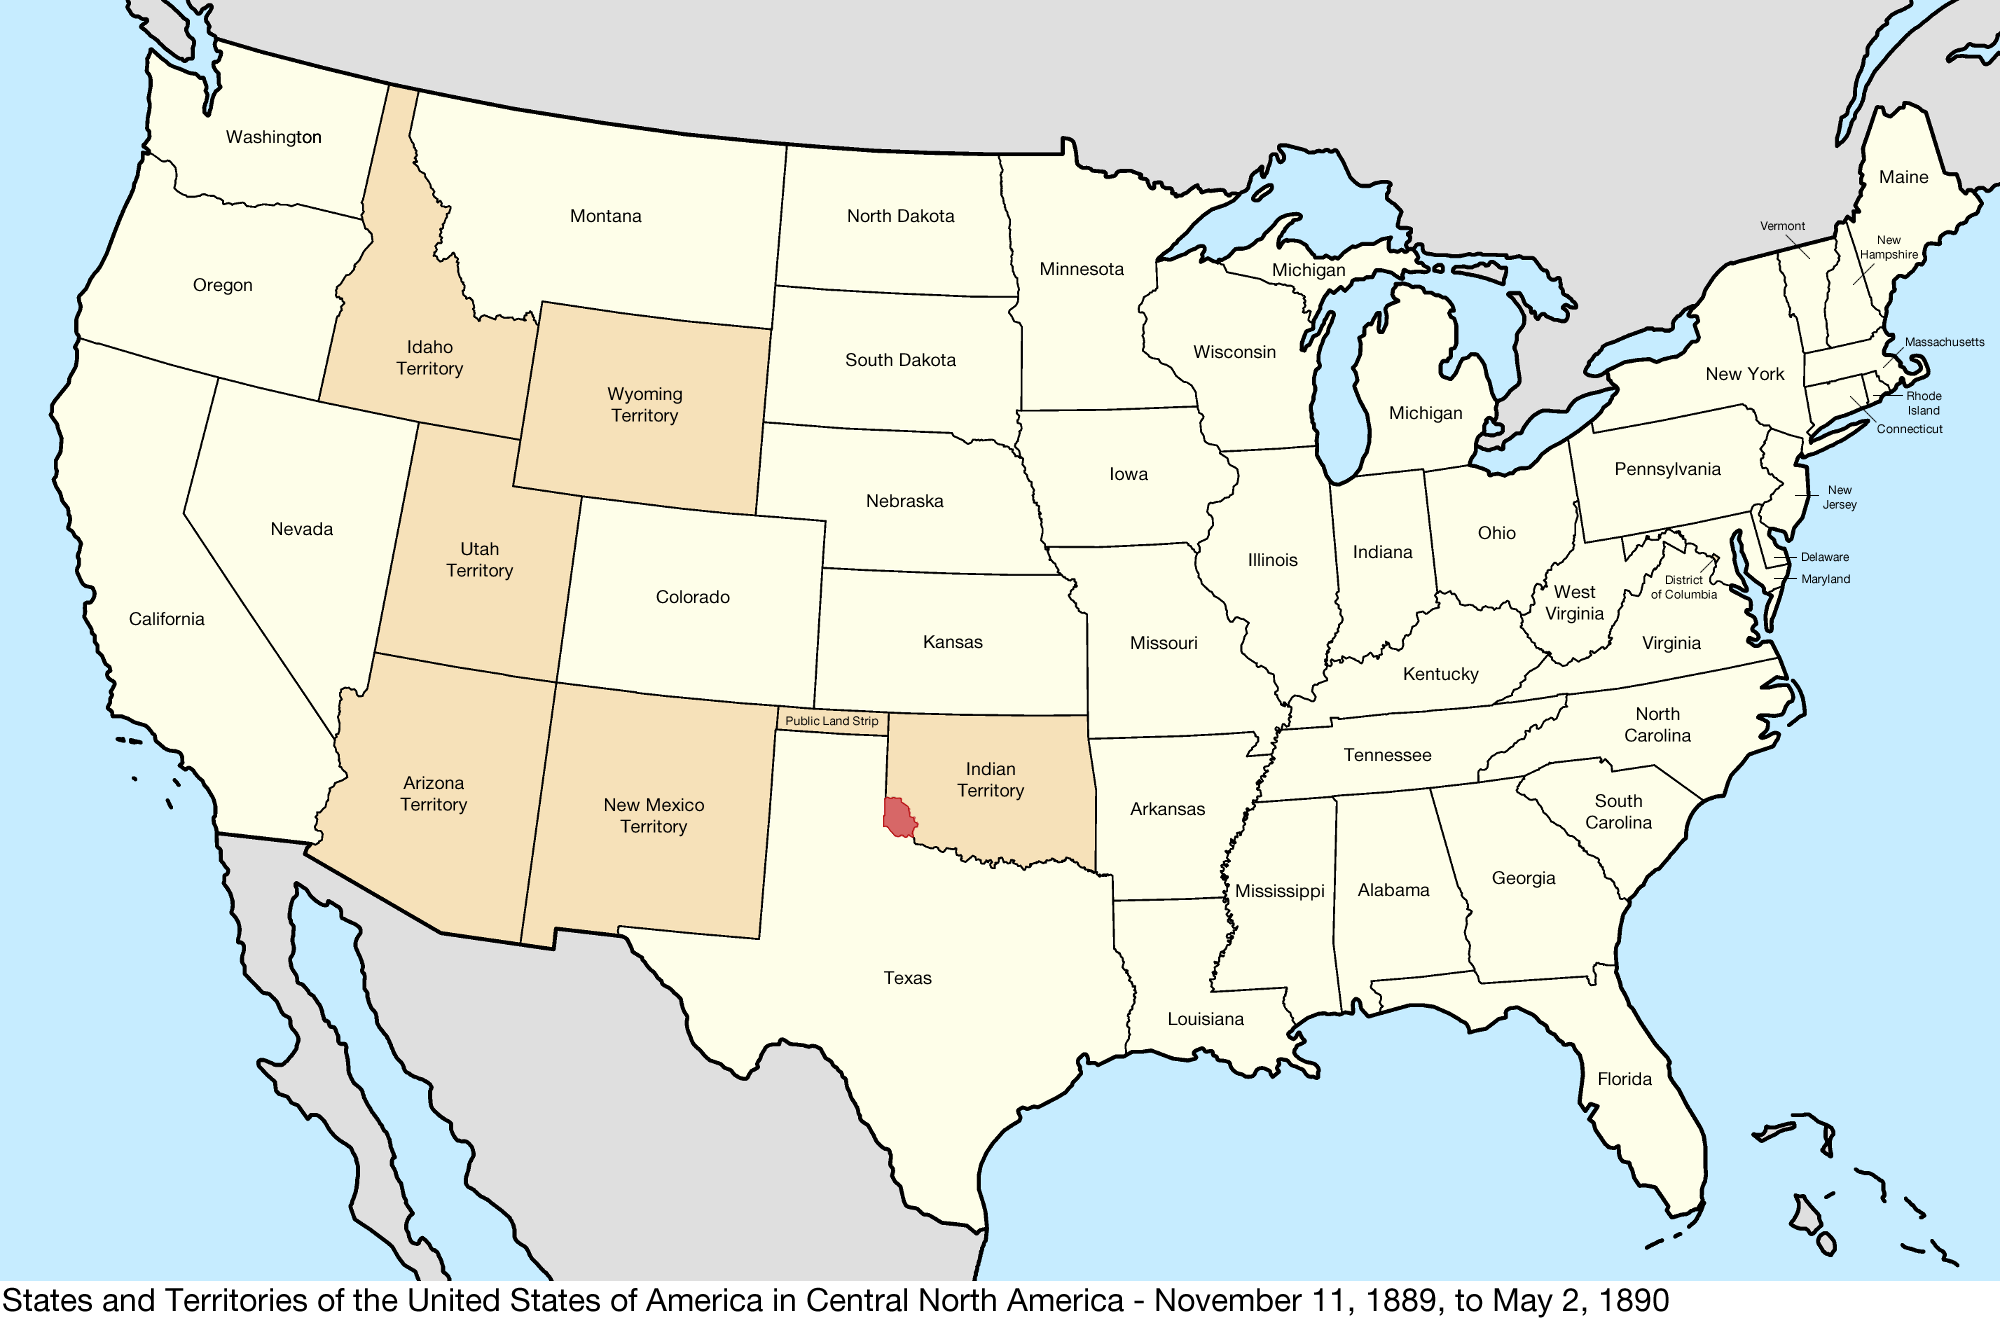 Map Of Us 1889 File:United States Central map 1889 11 11 to 1890 05 02.png